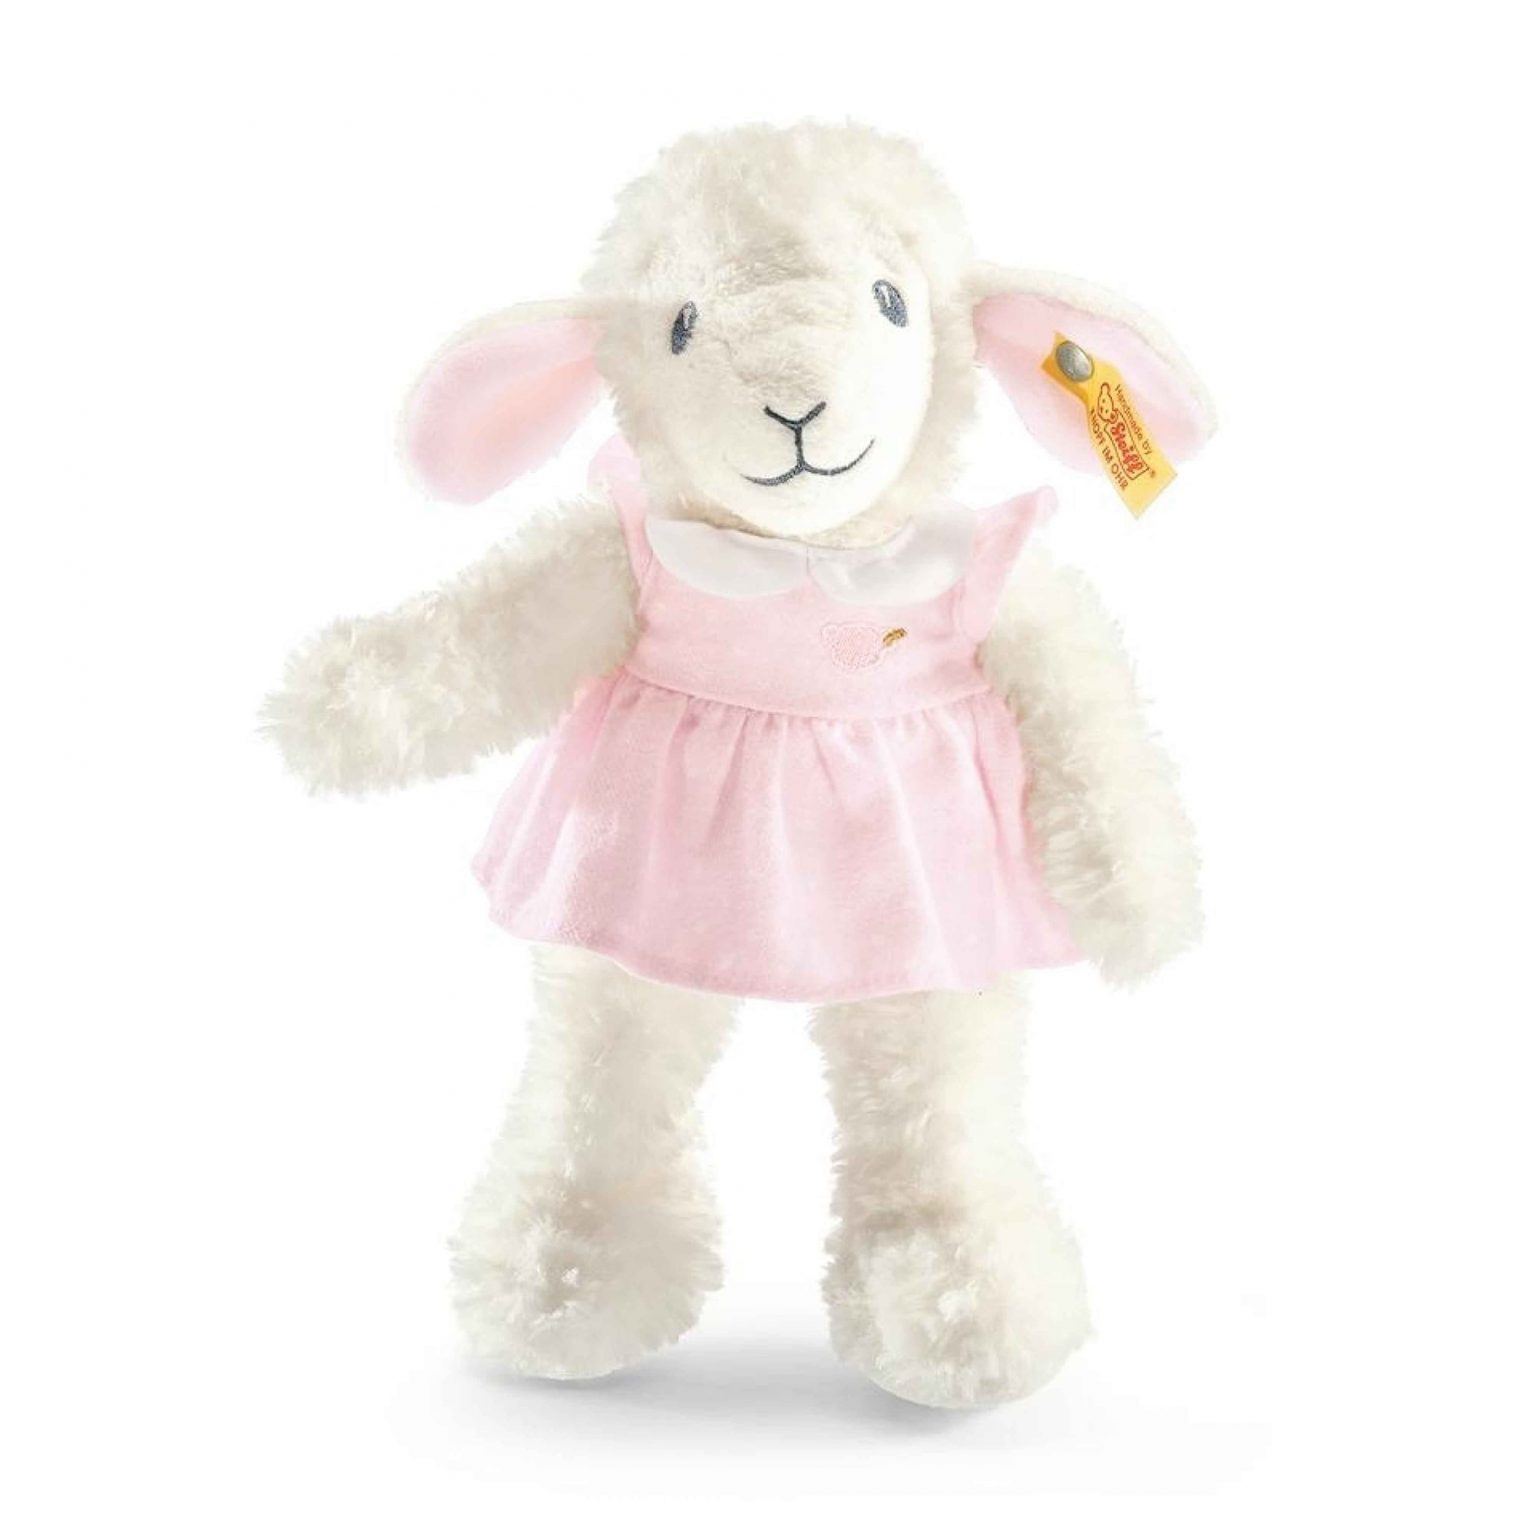 Sweet Dreams Lamb Steiff Teddy Bear Mary Shortle